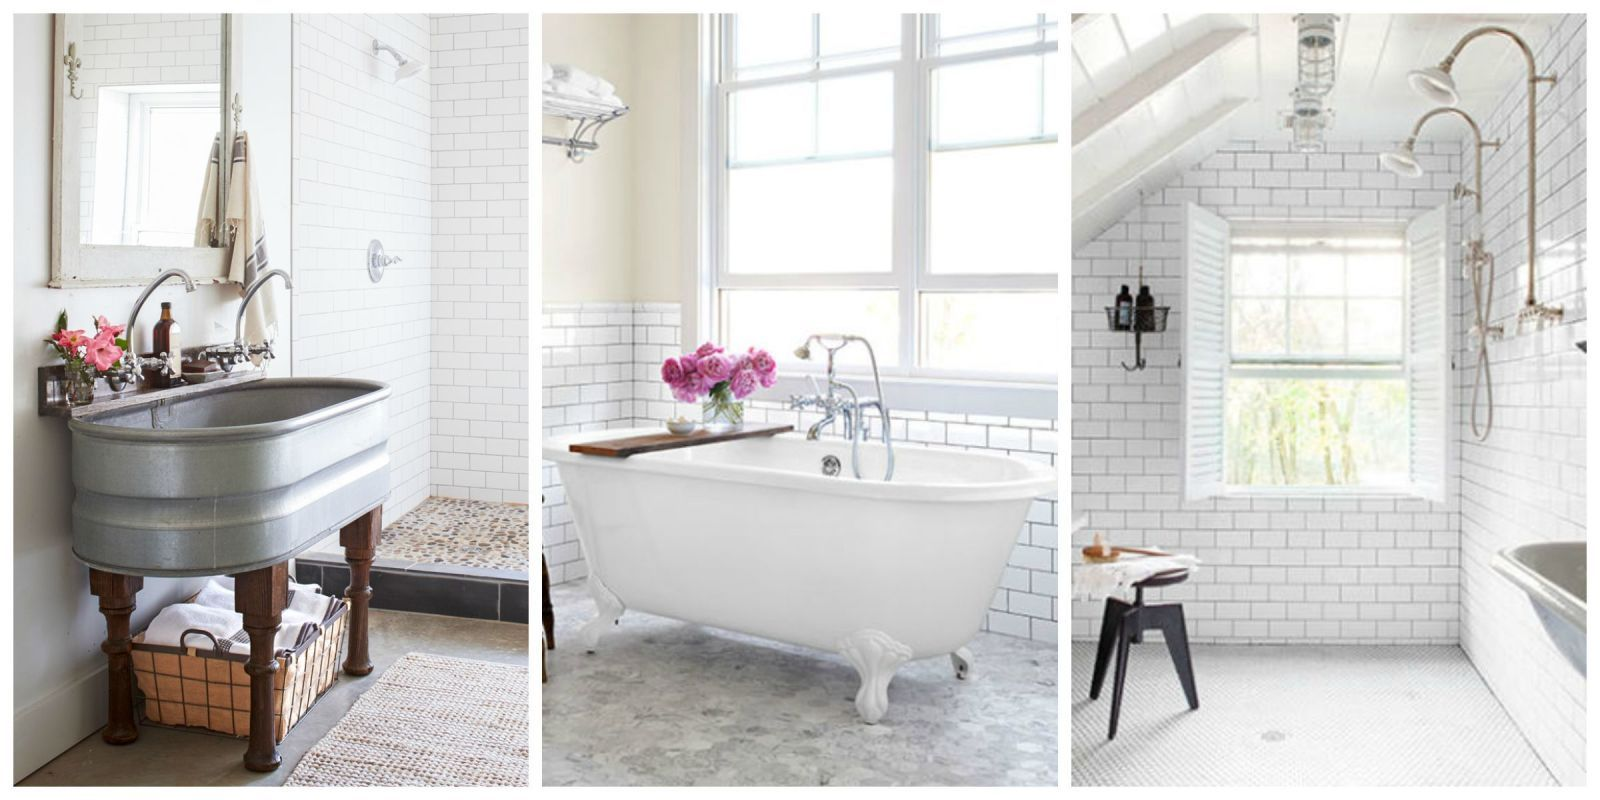 9 New Ways to Arrange Subway Tile in Your Bathroom | Subway tiles ...